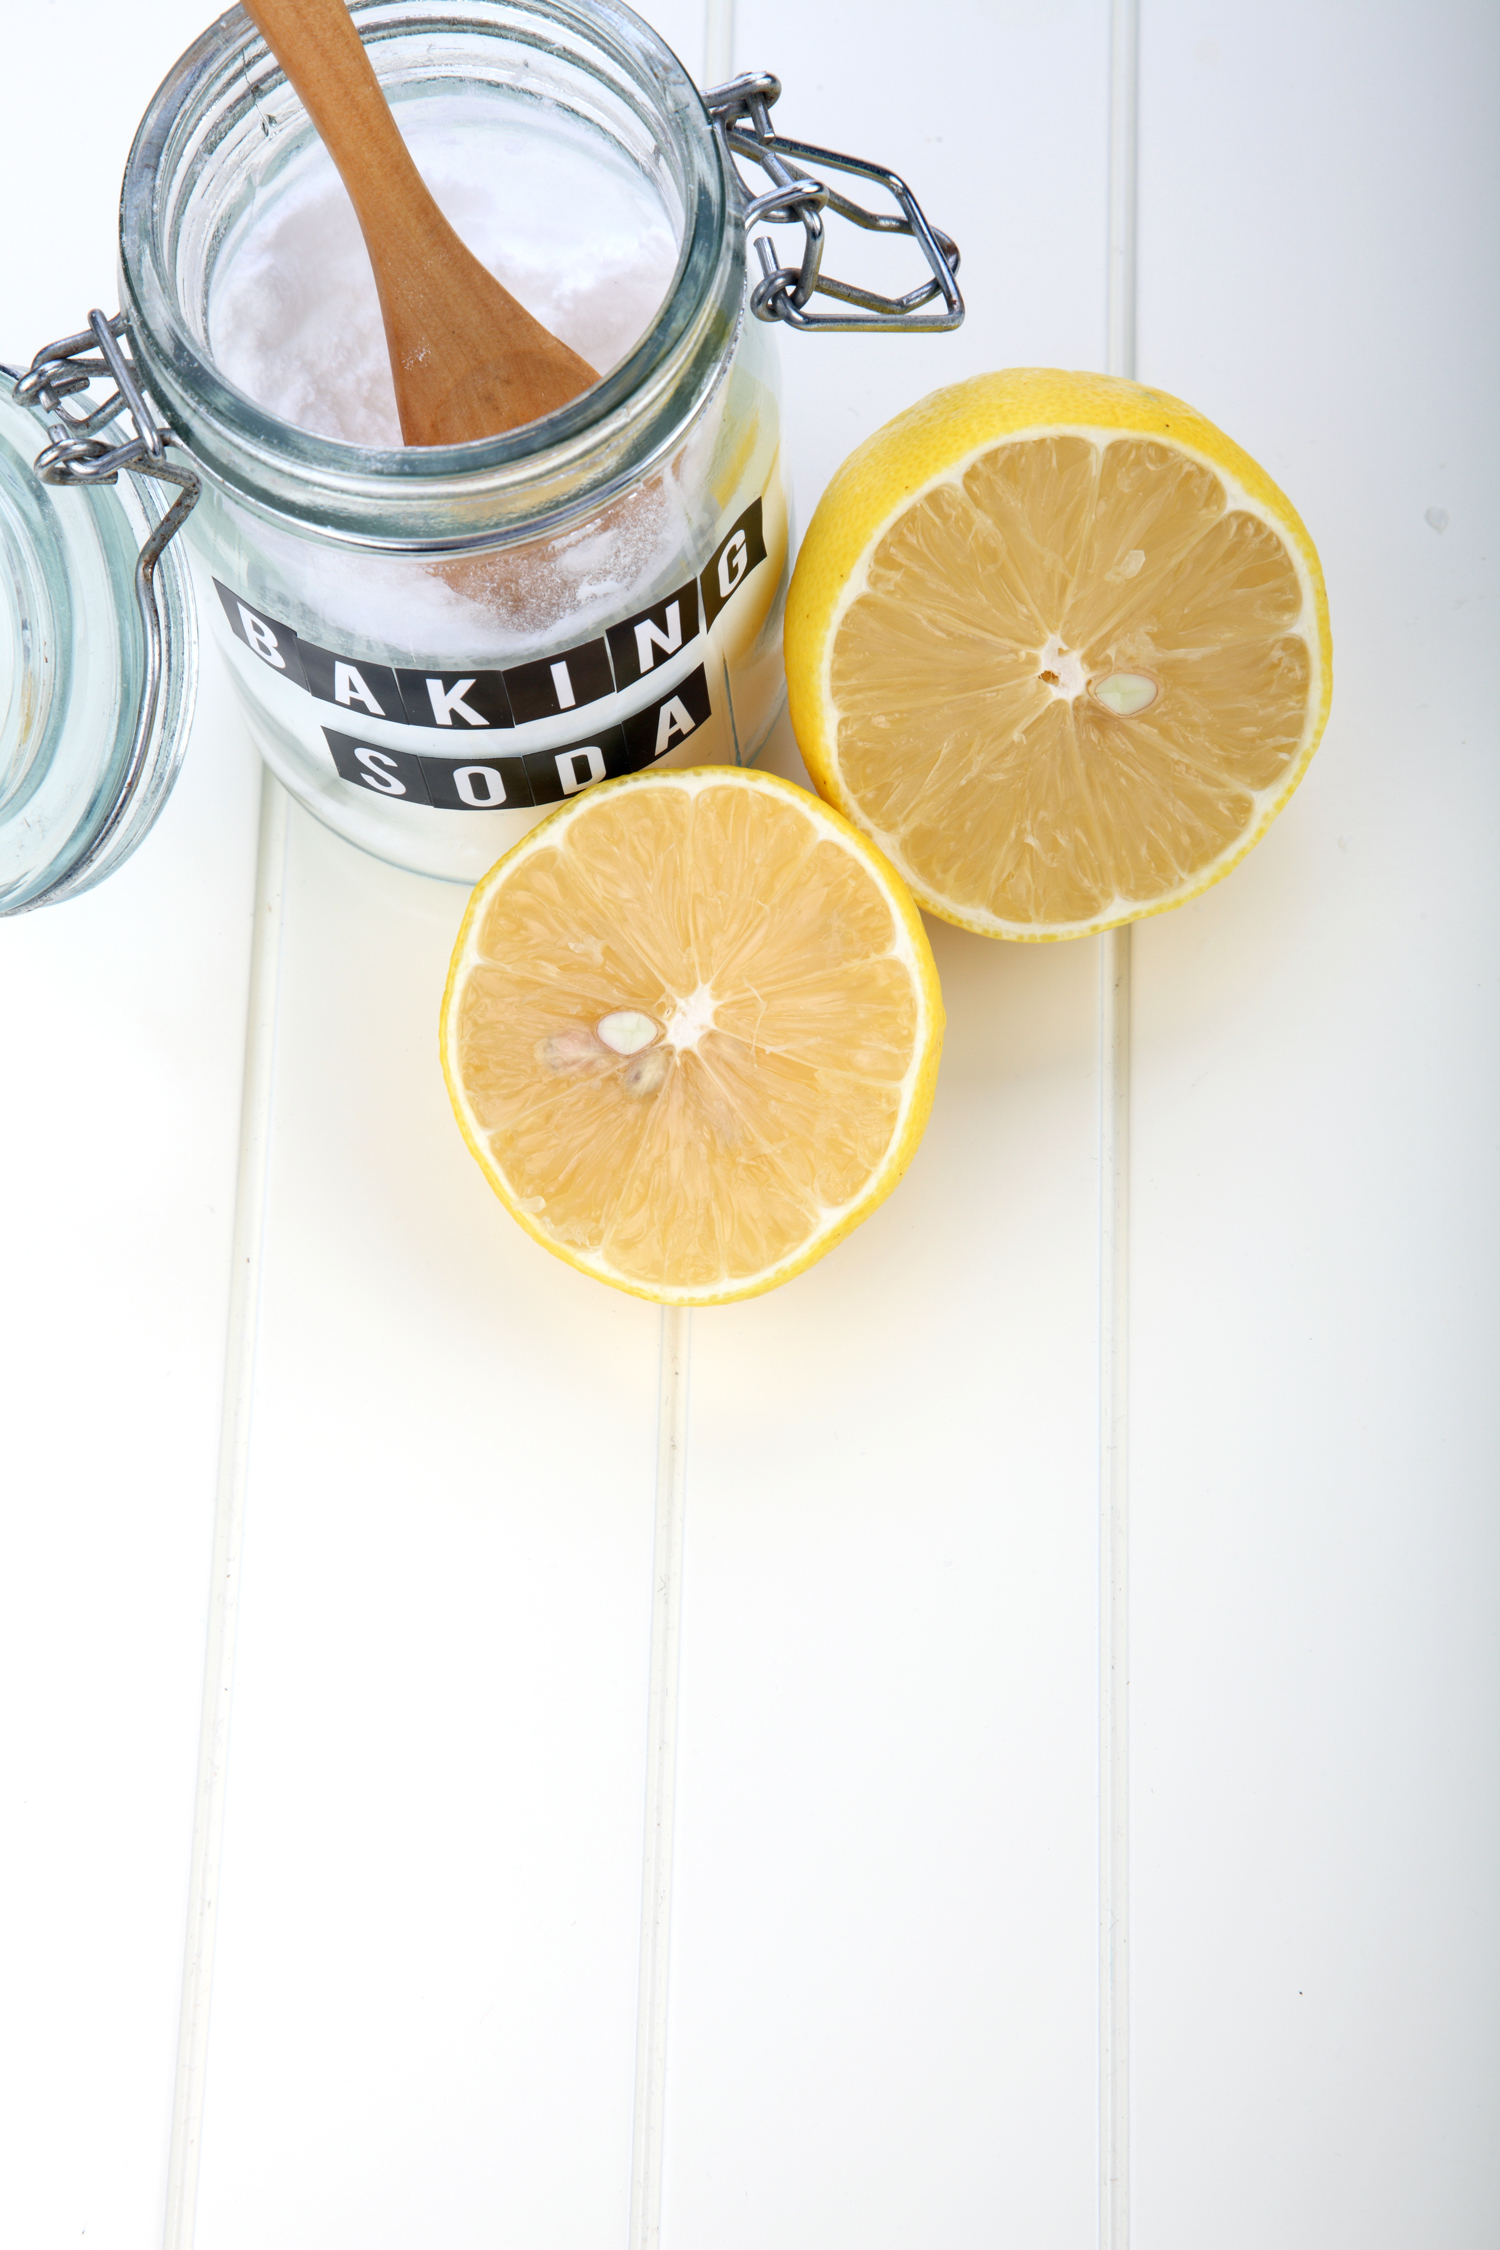 jar of baking soda and a sliced lemon